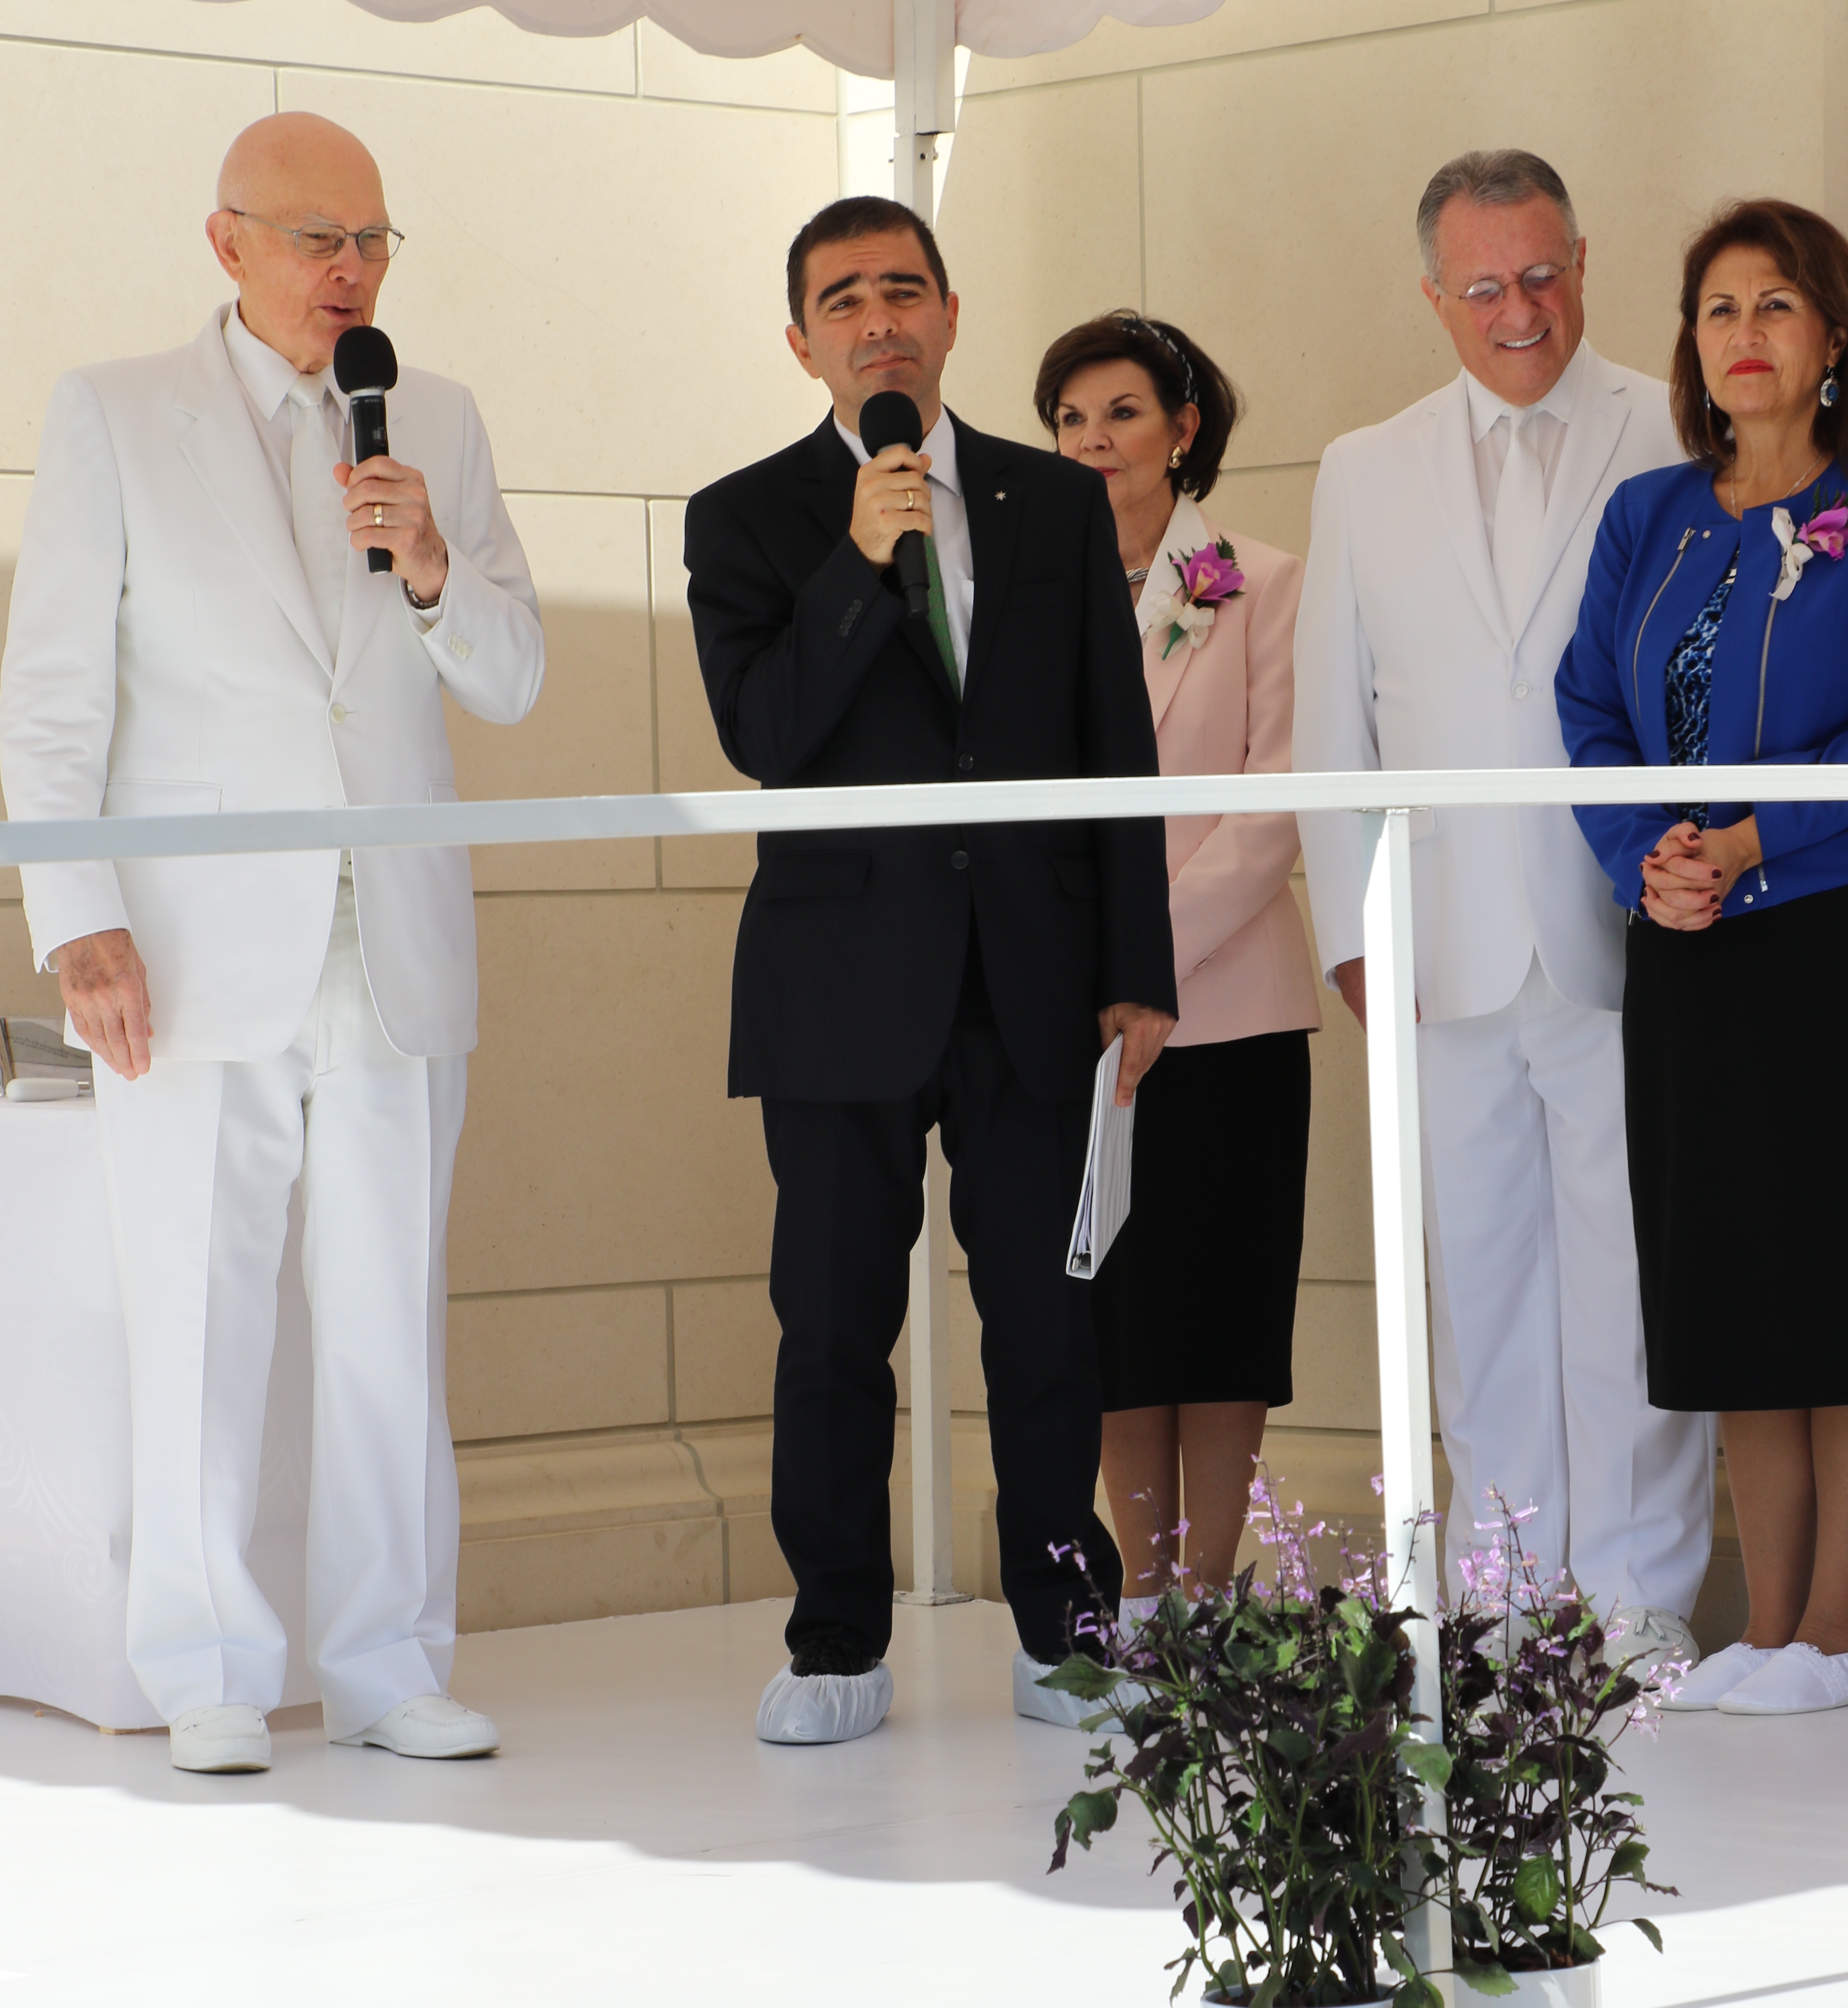 President Dallin H. Oaks, left, welcomes visitors to the cornerstone ceremony of the Barranquilla Colombia Temple on Sunday Dec. 9, 2018. Participating in addition to the interpreter at the side of the first counselor in the First Presidency are Sister Kristen Oaks, center, Elder Ulisses Soares of the Quorum of the Twelve Apostles and Sister Rosana Soares.